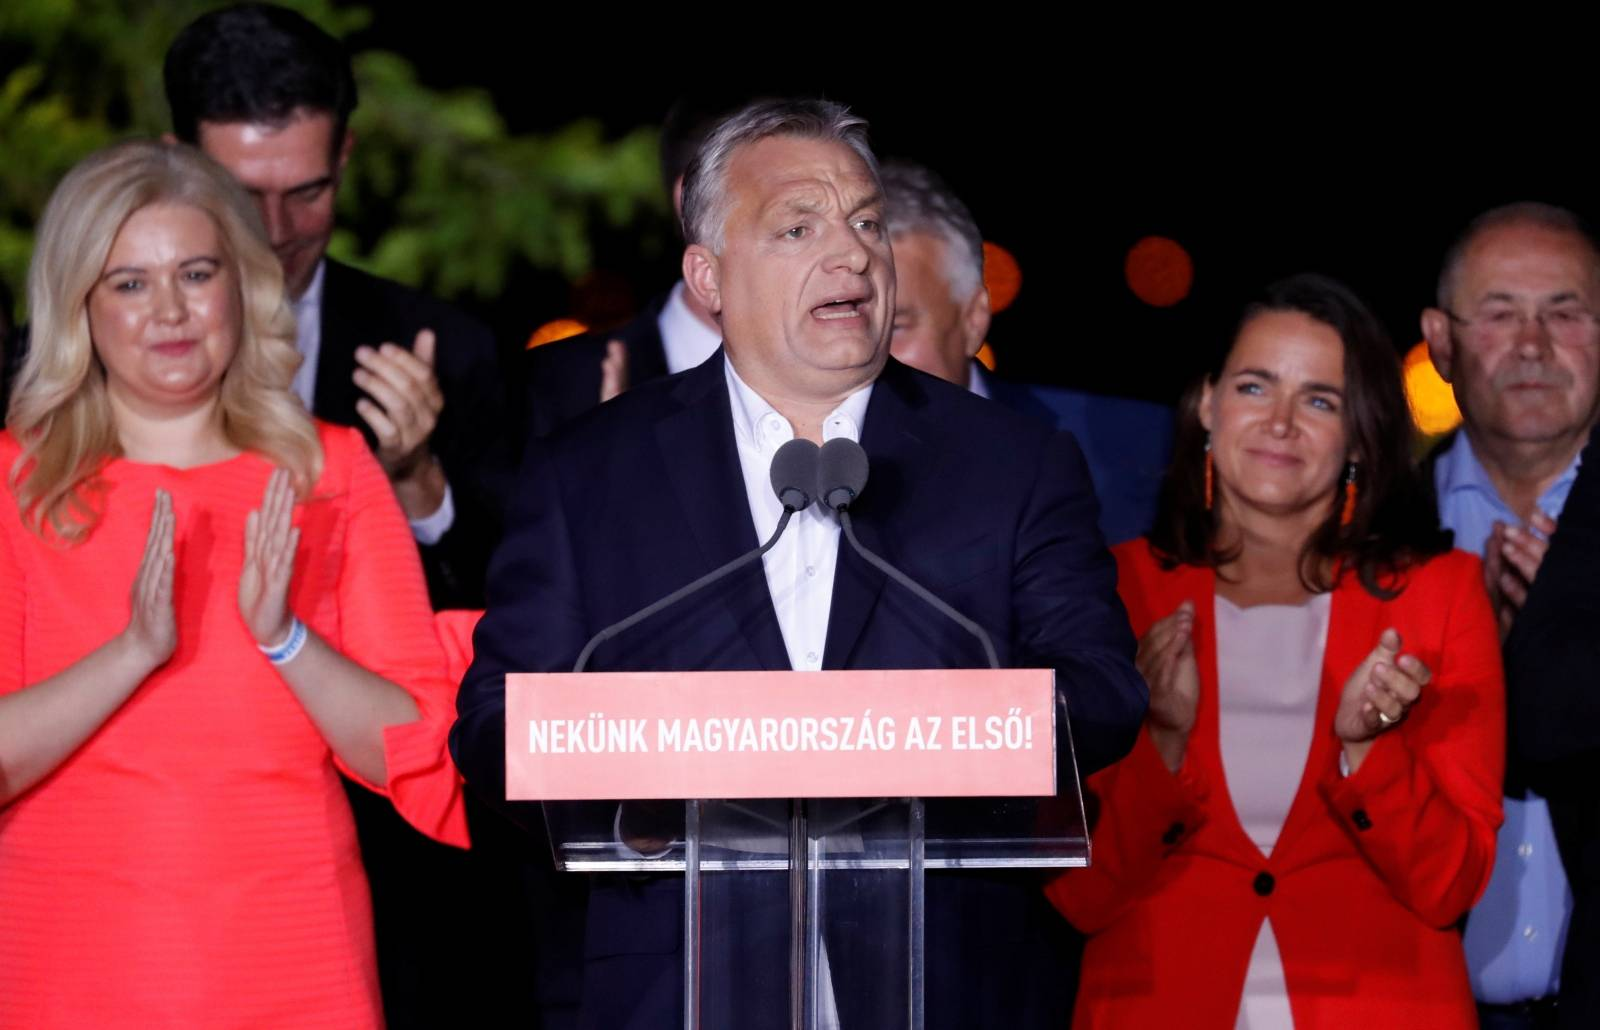 Hungarian Prime Minister Viktor Orban speaks following the preliminary results of the European Parliament election in Budapest